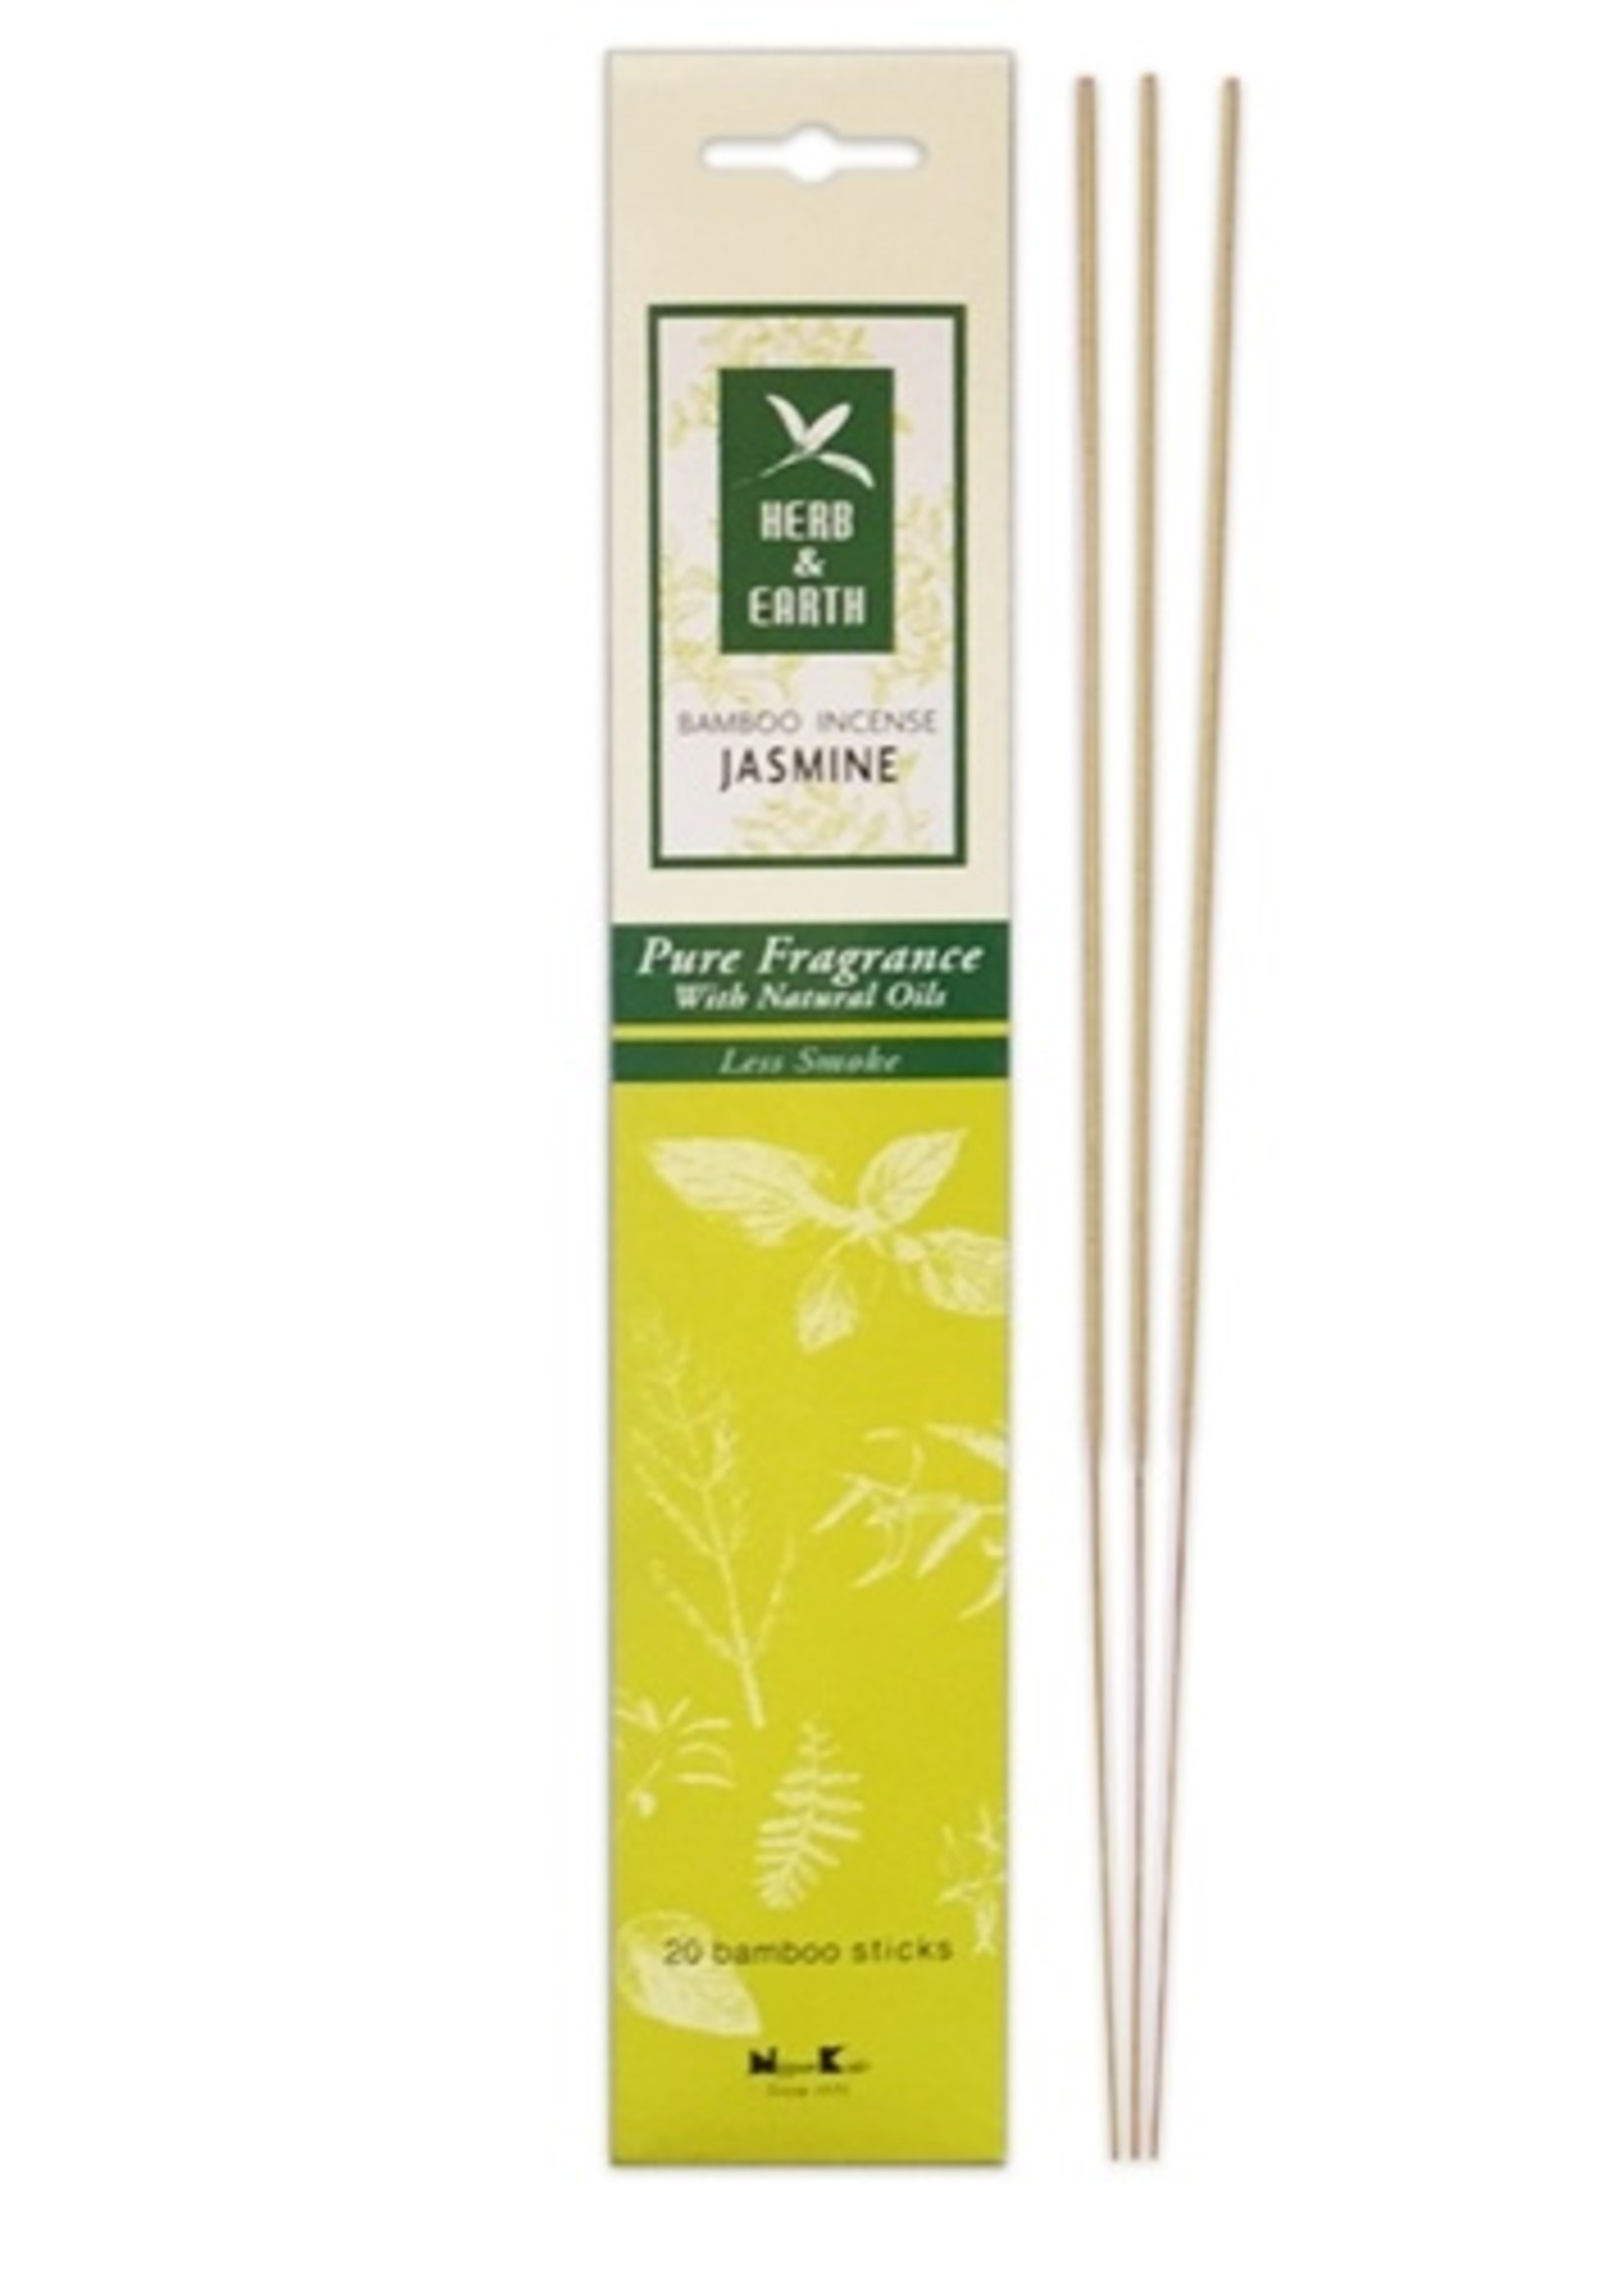 Incense Herb & Earth